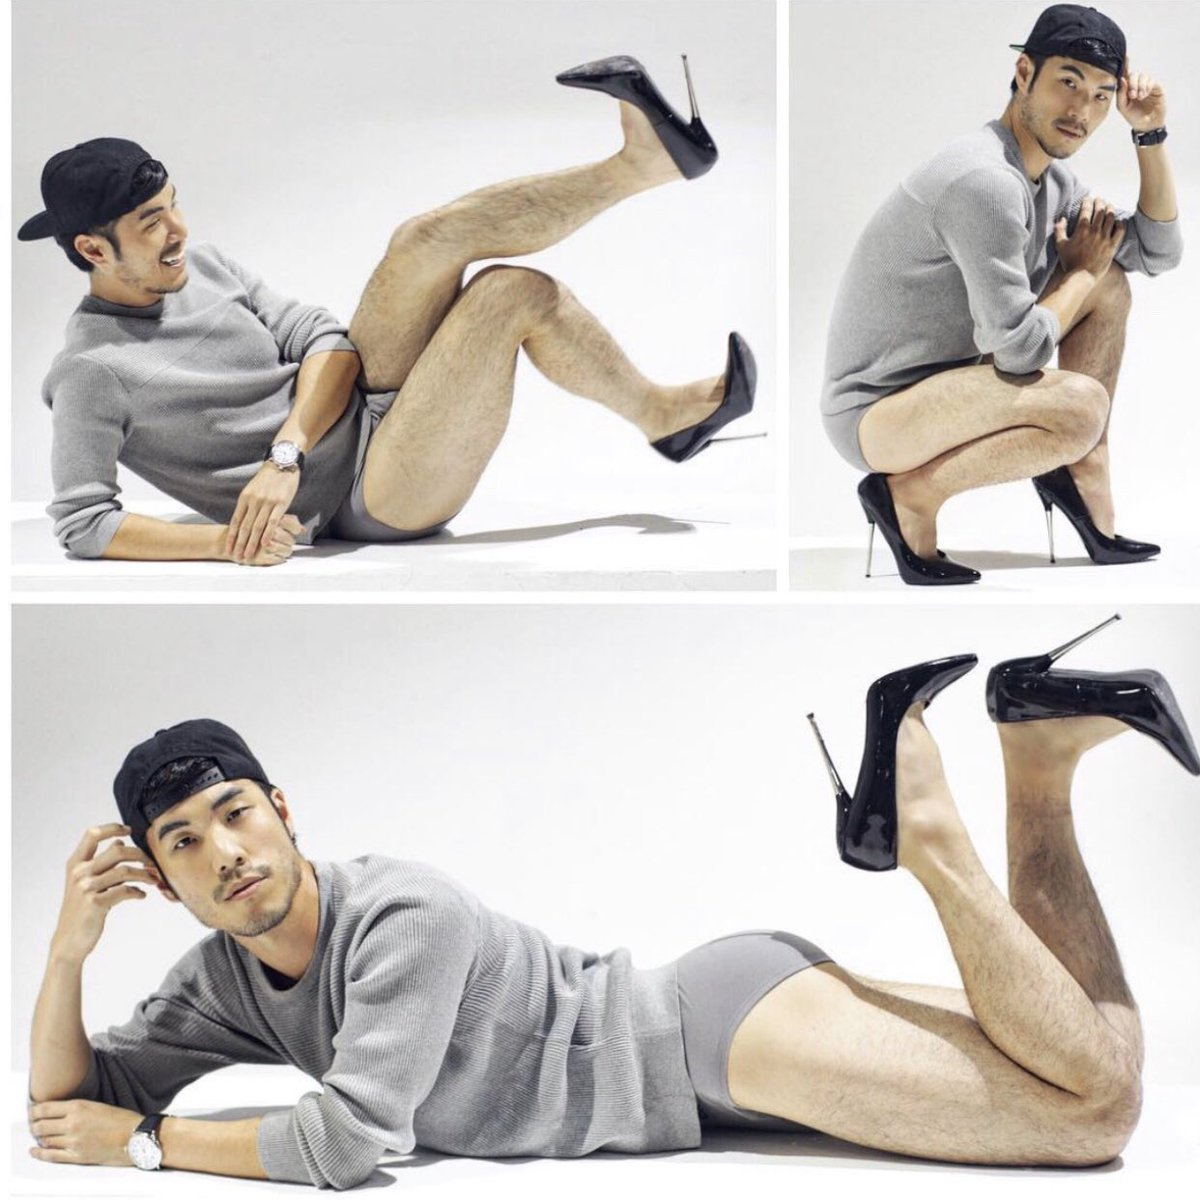 Oh wait, I guess @EugeneLeeYang didn't need lisa's legs